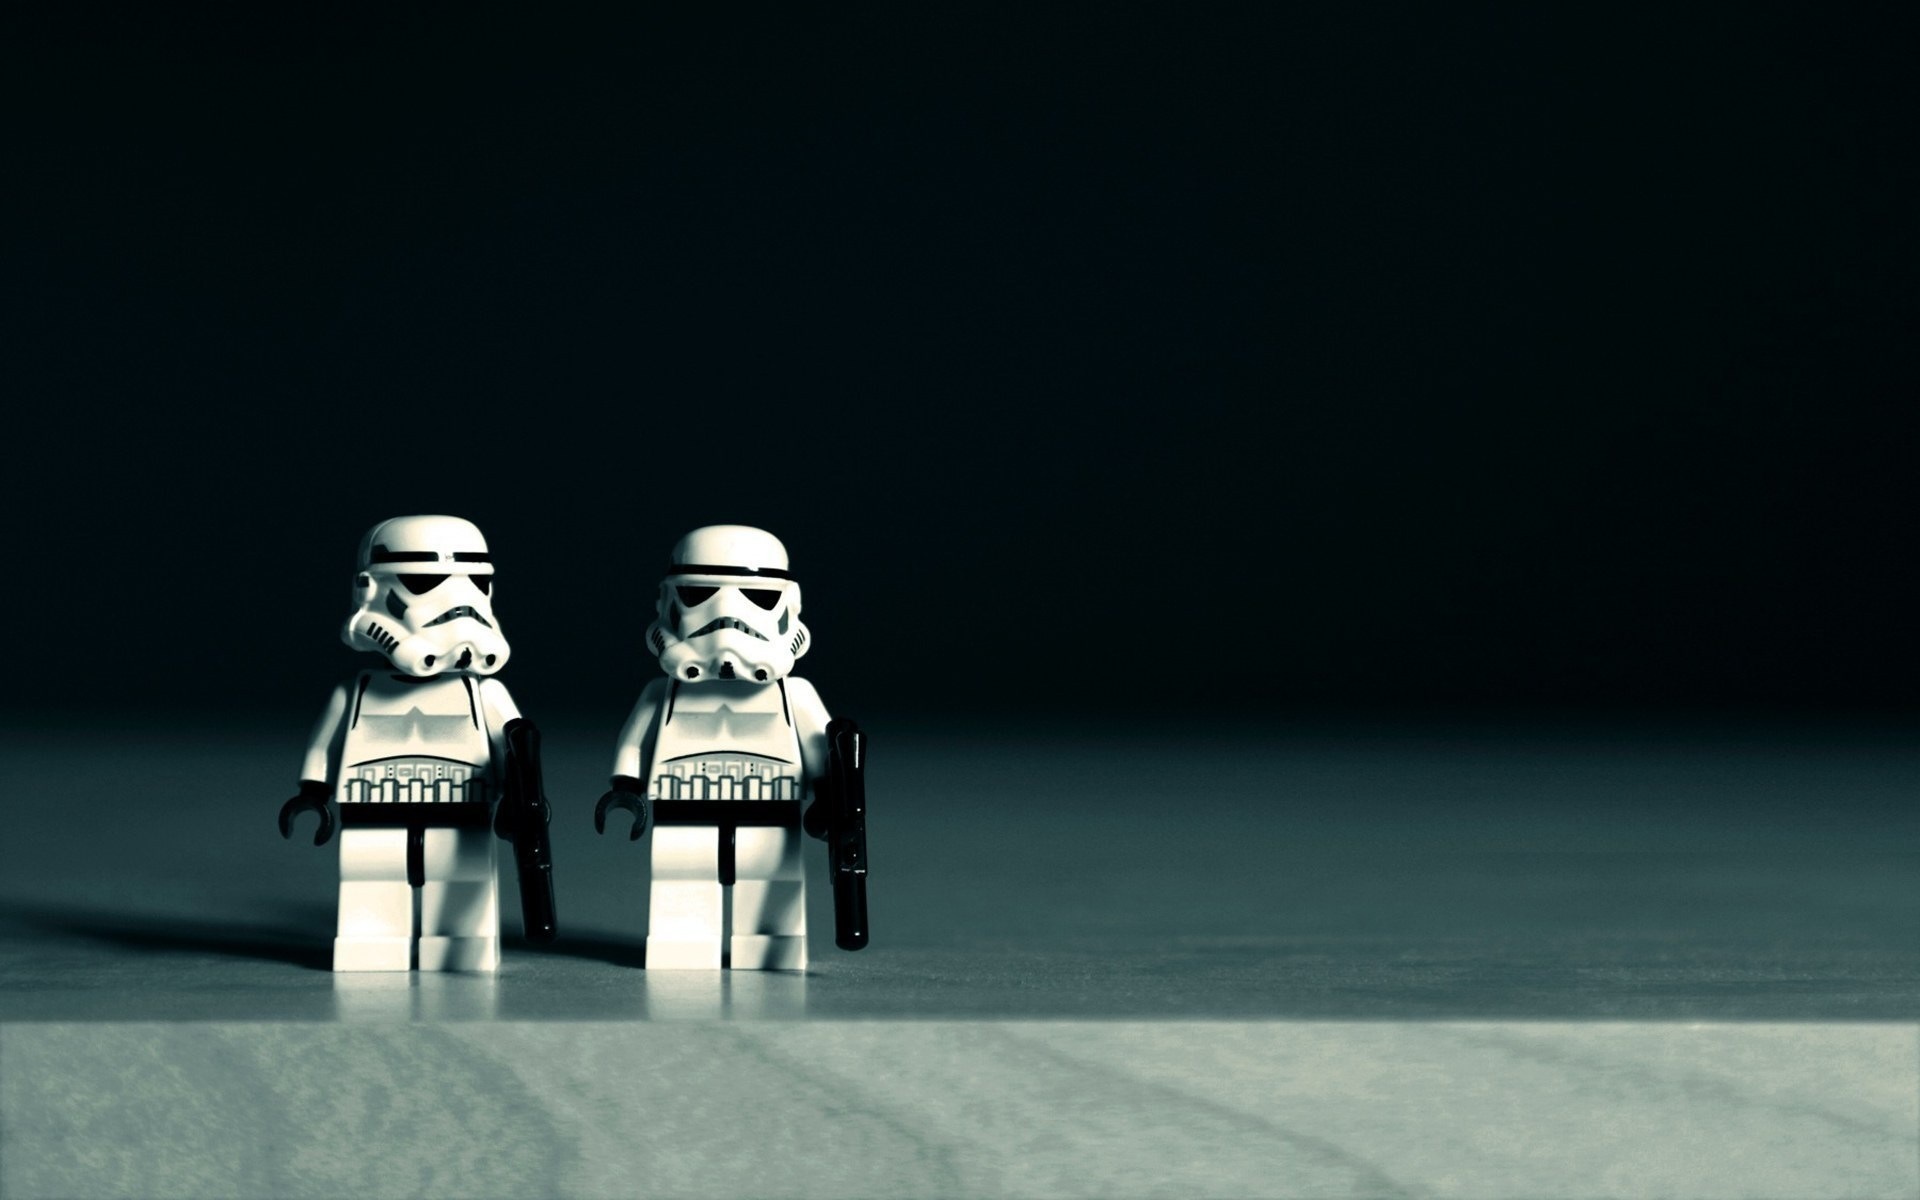 Star Wars Lego Wallpapers HD